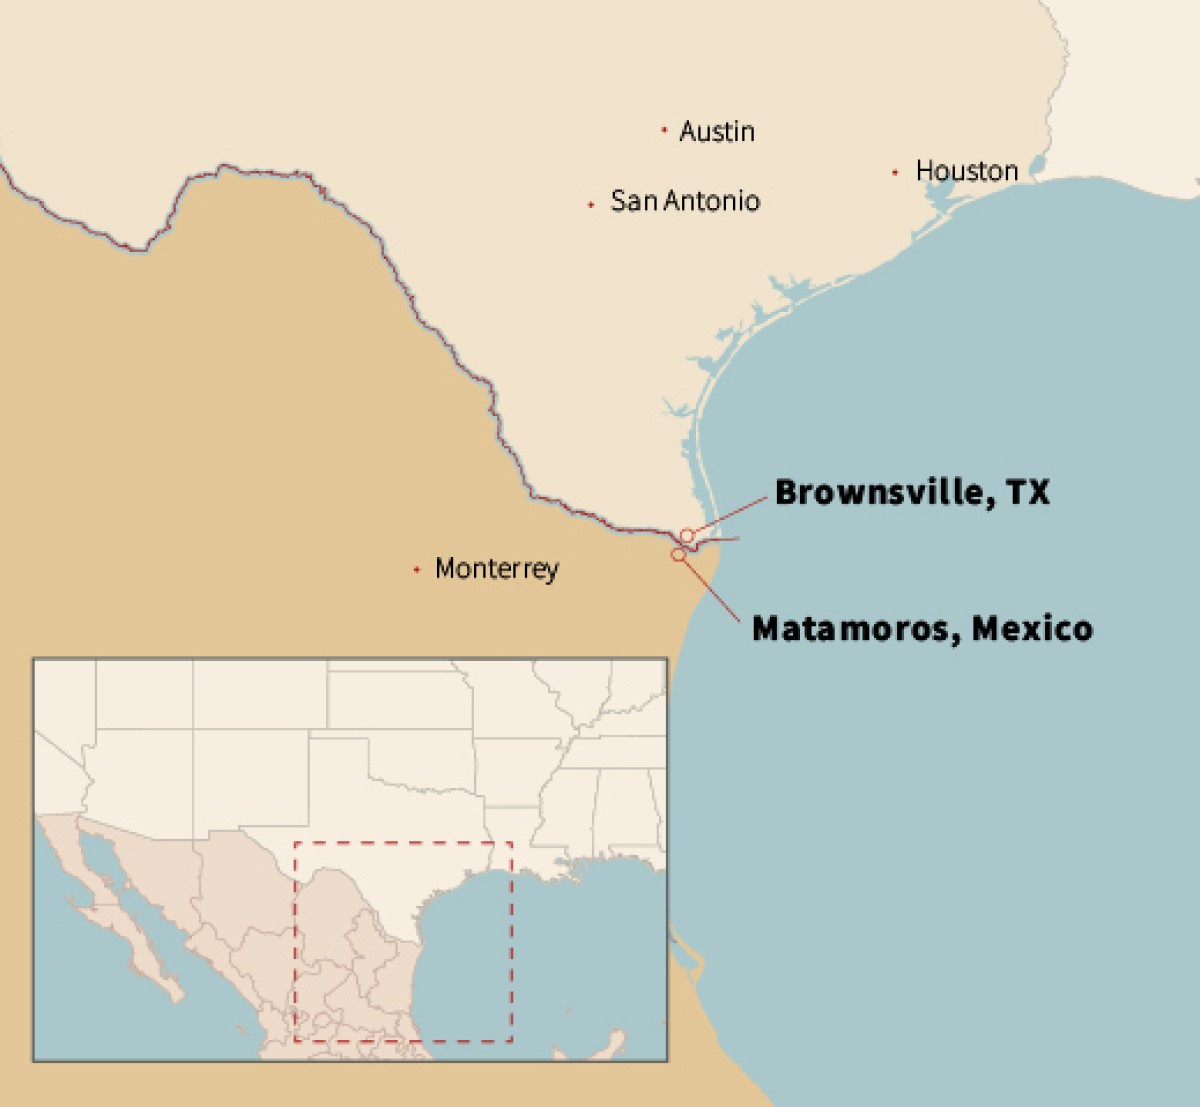 a map locating Brownsville, TX and Matamoros, Mexico